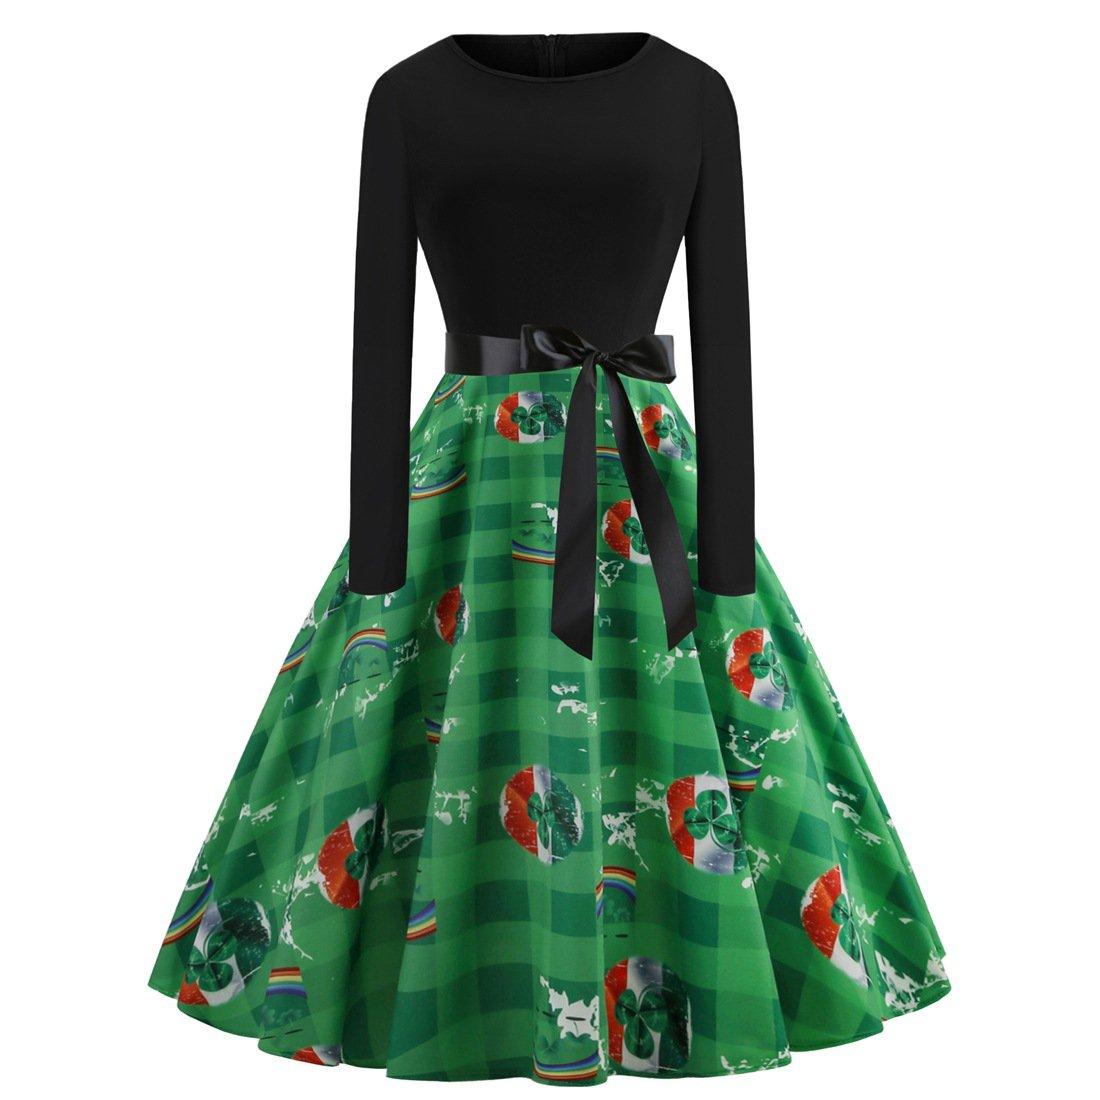 Retro Midi Party Dresses Shamrocks Costume Ireland Fashion Clothing St. Patrick Vintage Casual Dress